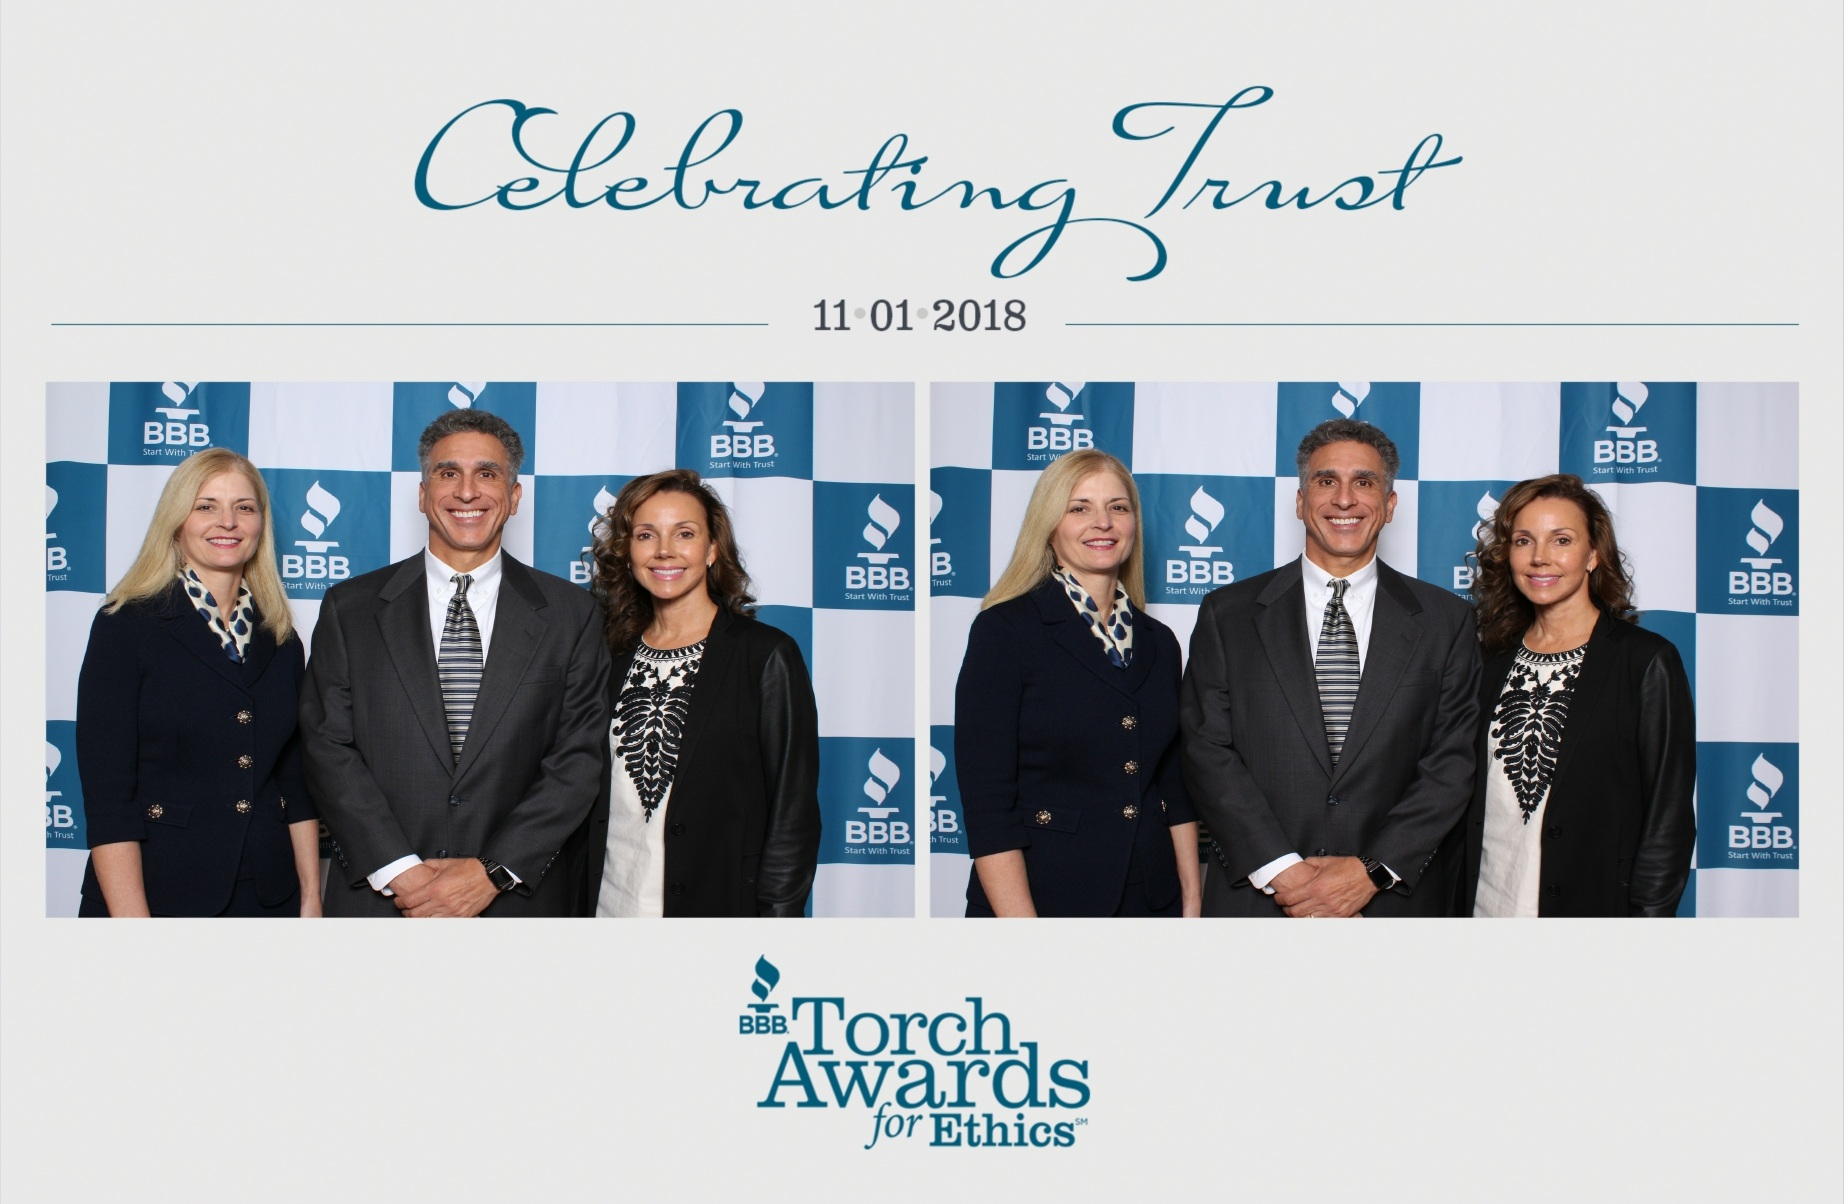 BBB Torch Awards Photo Booth